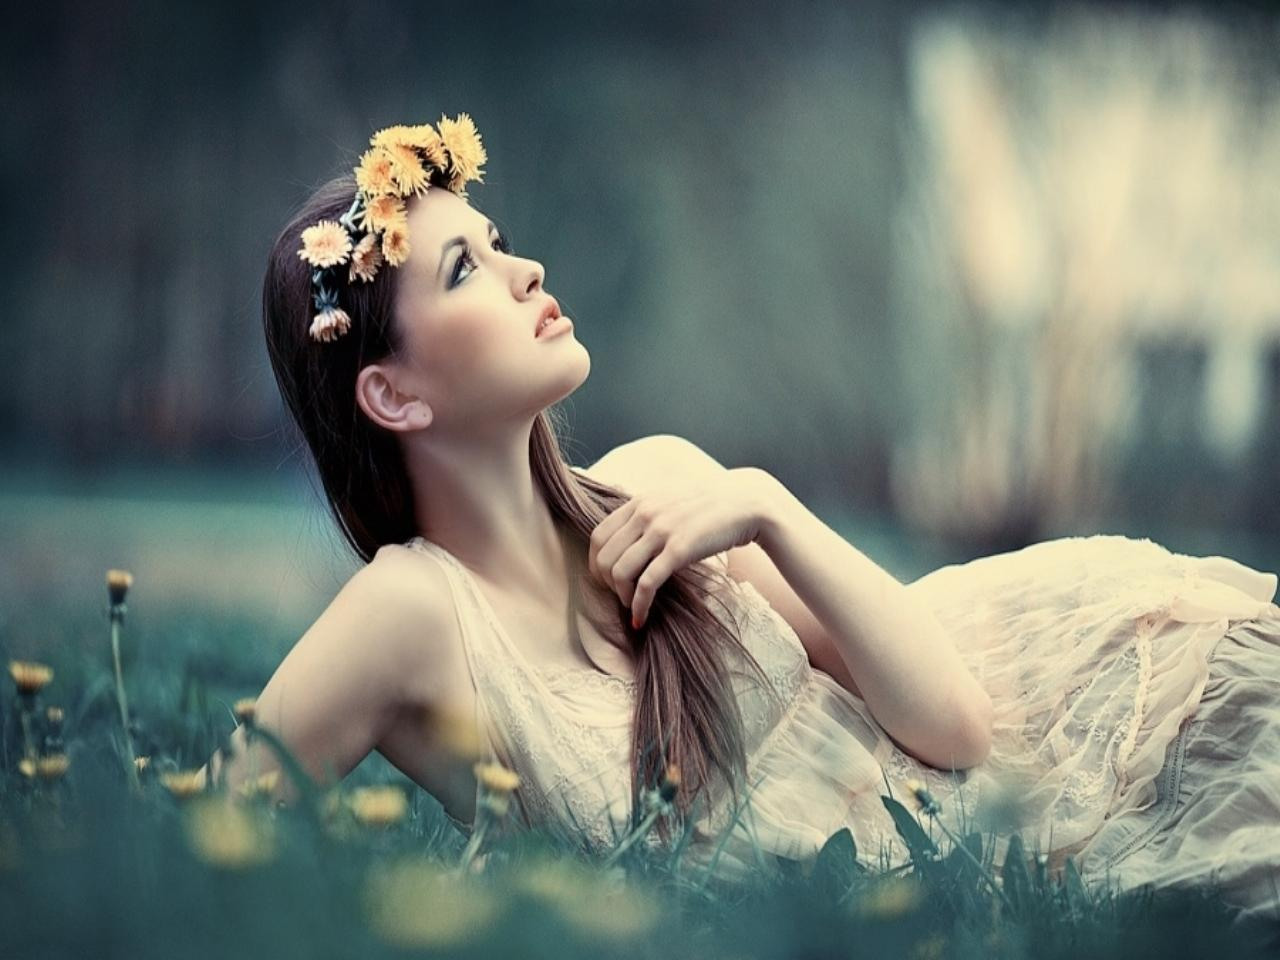 Wearing Flower Ring Girl Photography Facebook Timeline Cover